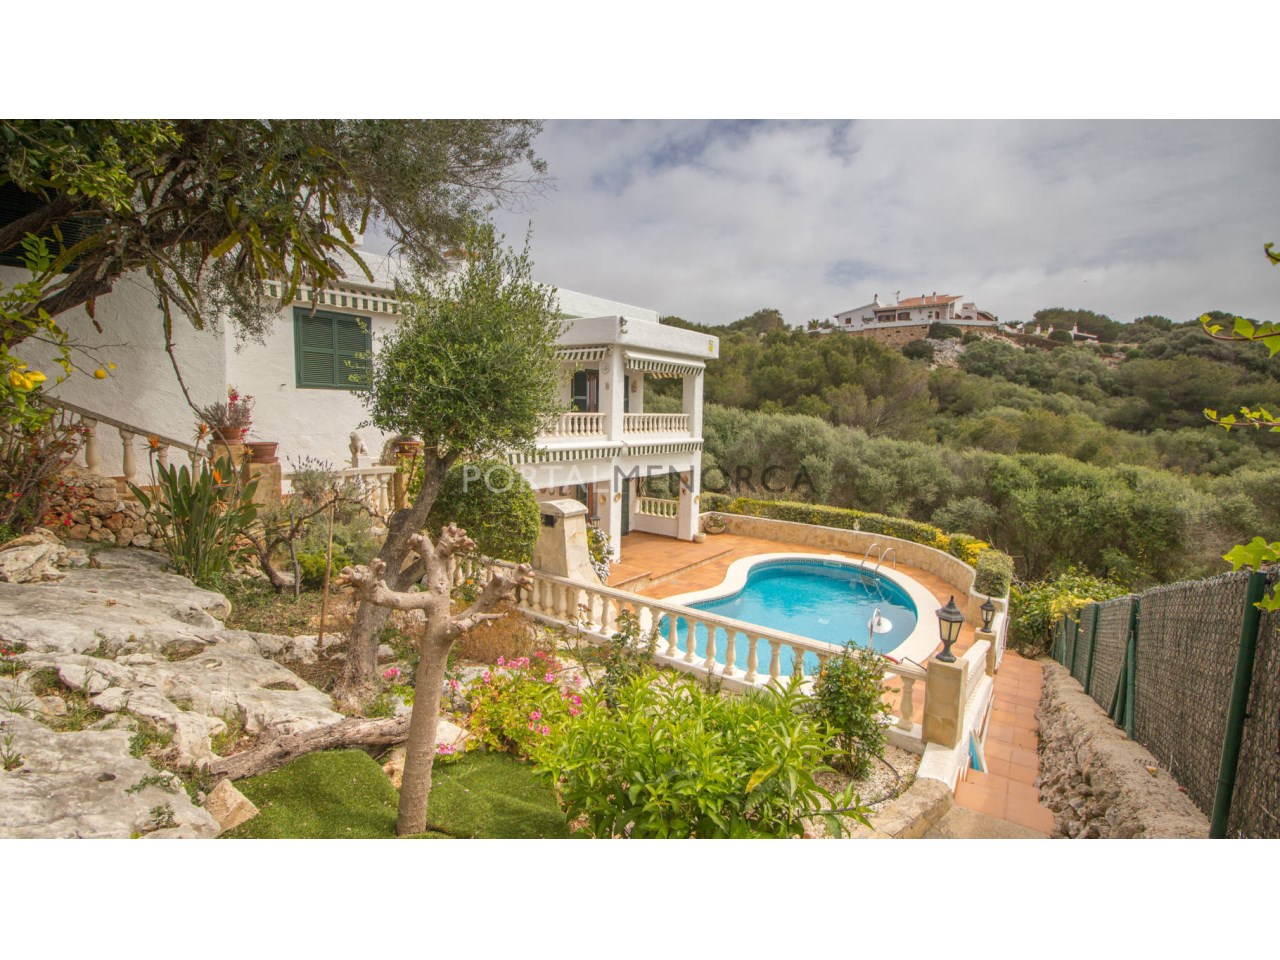 House for sale in Menorca with swimming pool and sea view\n